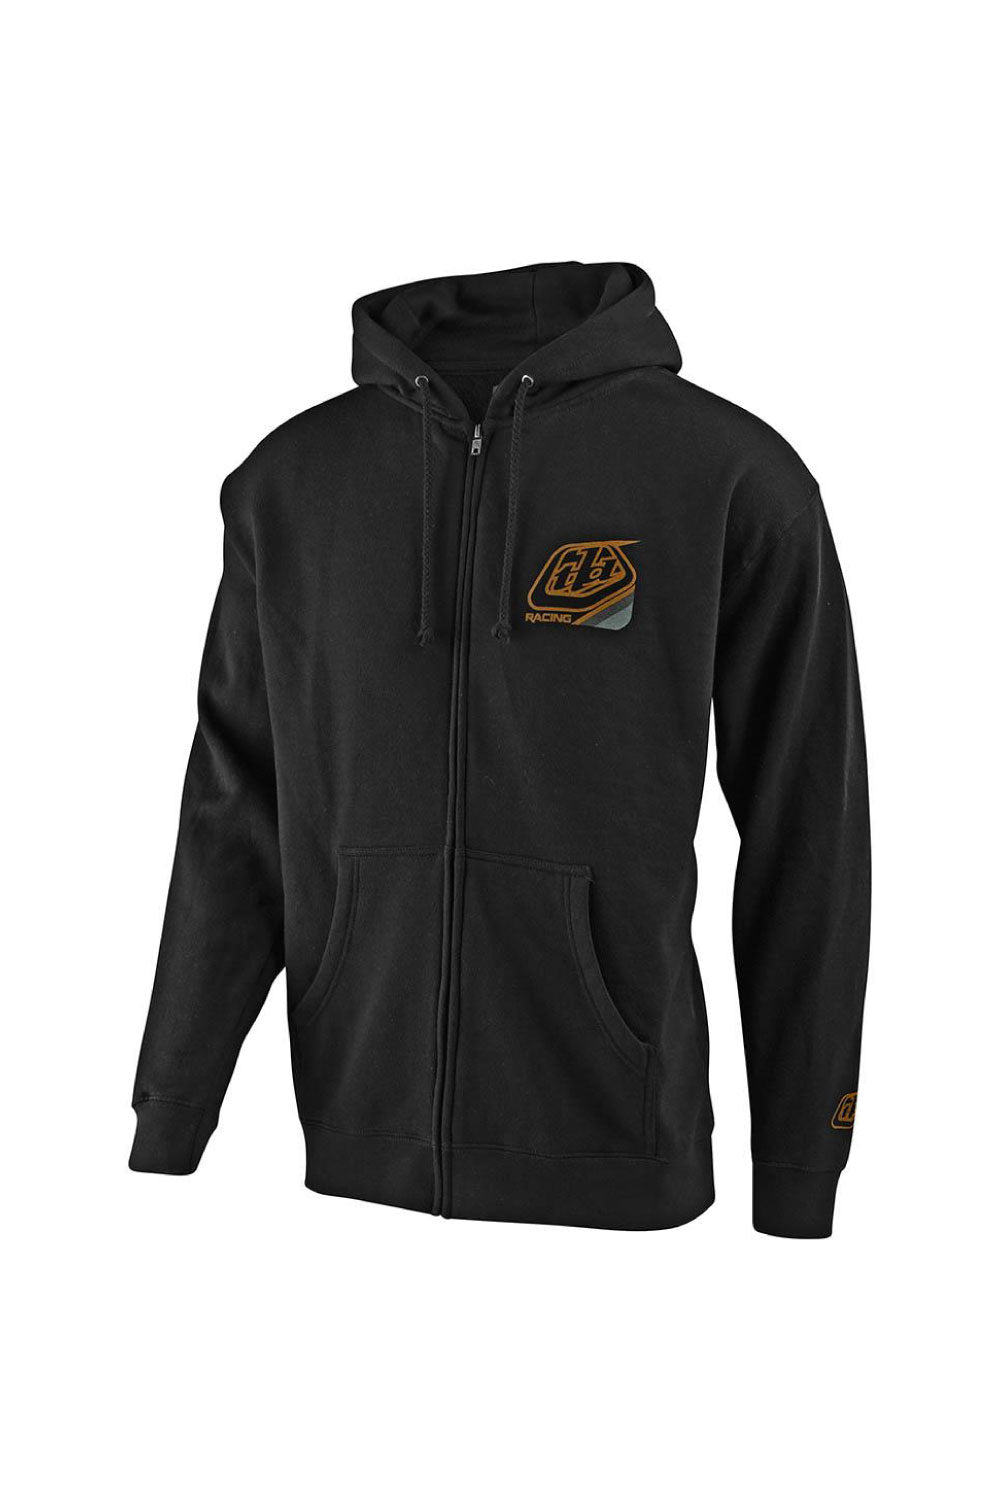 Troy Lee Designs 2021 Mix Zip Up Hoodie Jumper